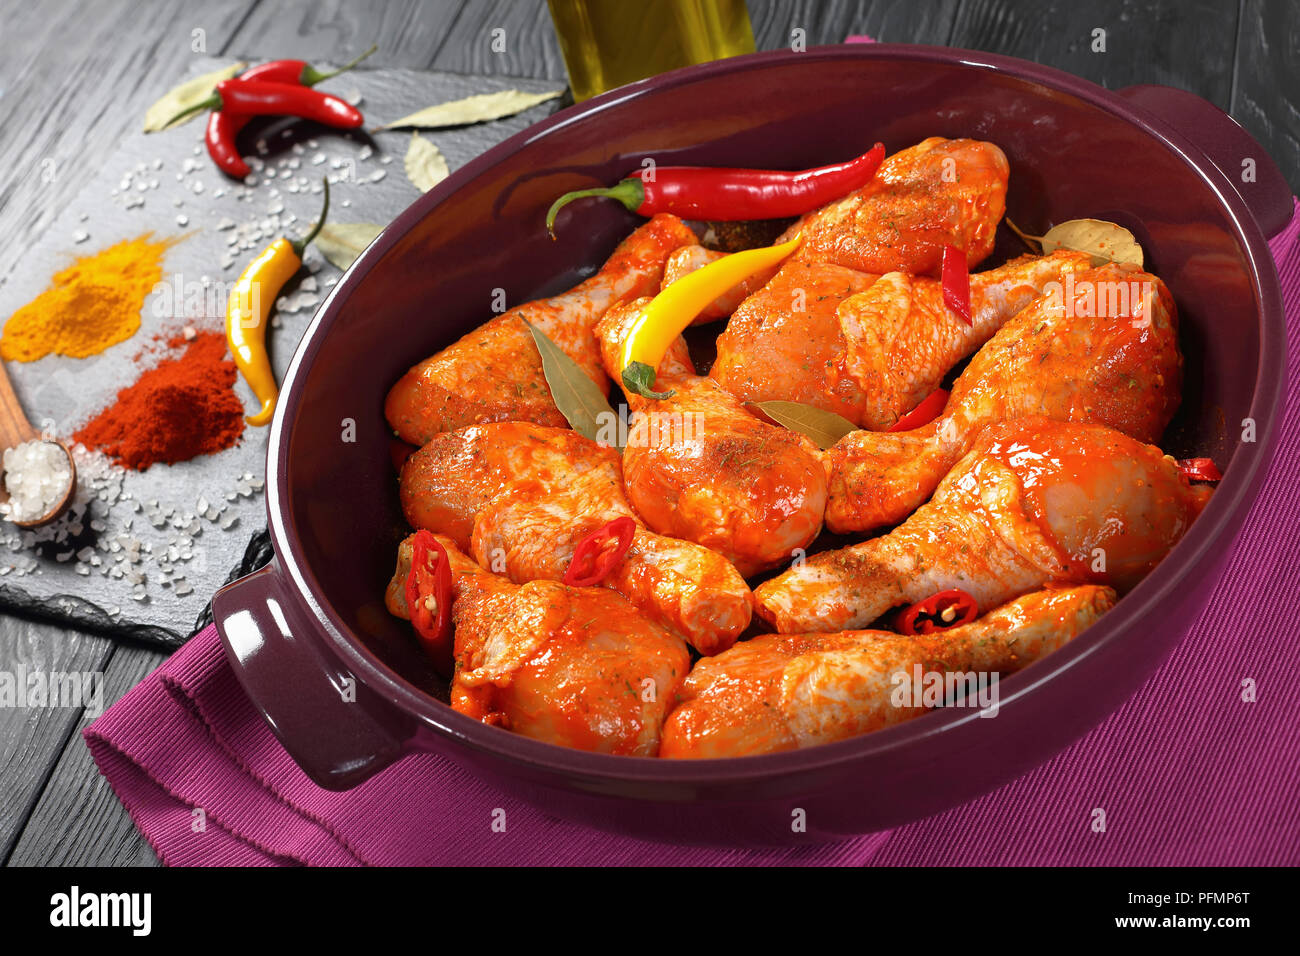 raw marinated chicken drumsticks sprinkled with spice, chili pepper pieces, bay leaves  prepared to cook in a dish, ingredients on a stone board on a  Stock Photo